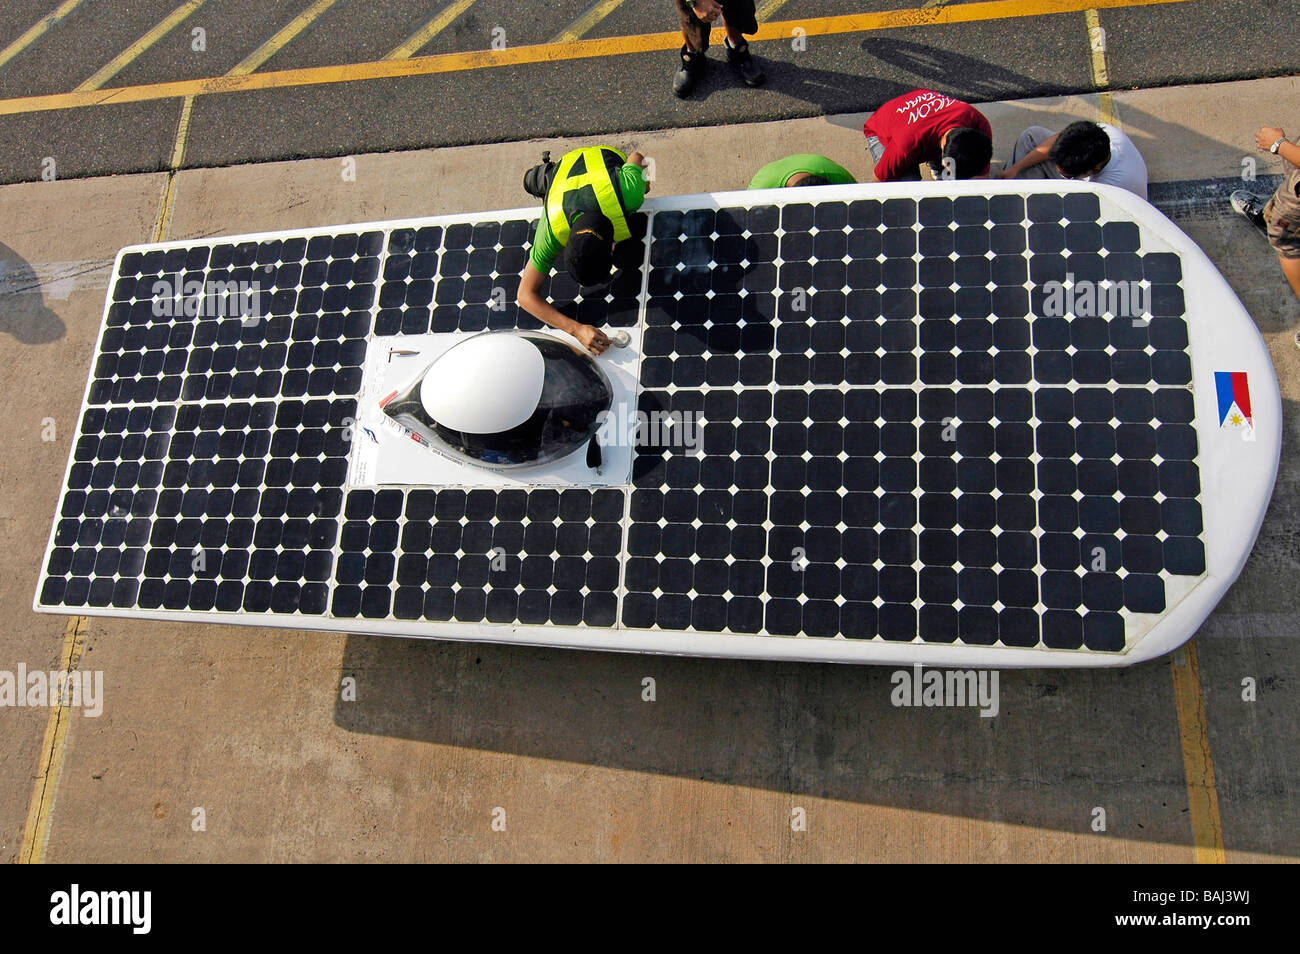 Solar cars getting ready before taking part in the qualification rounds of the World solar challenge race in Darwin, - Stock Image